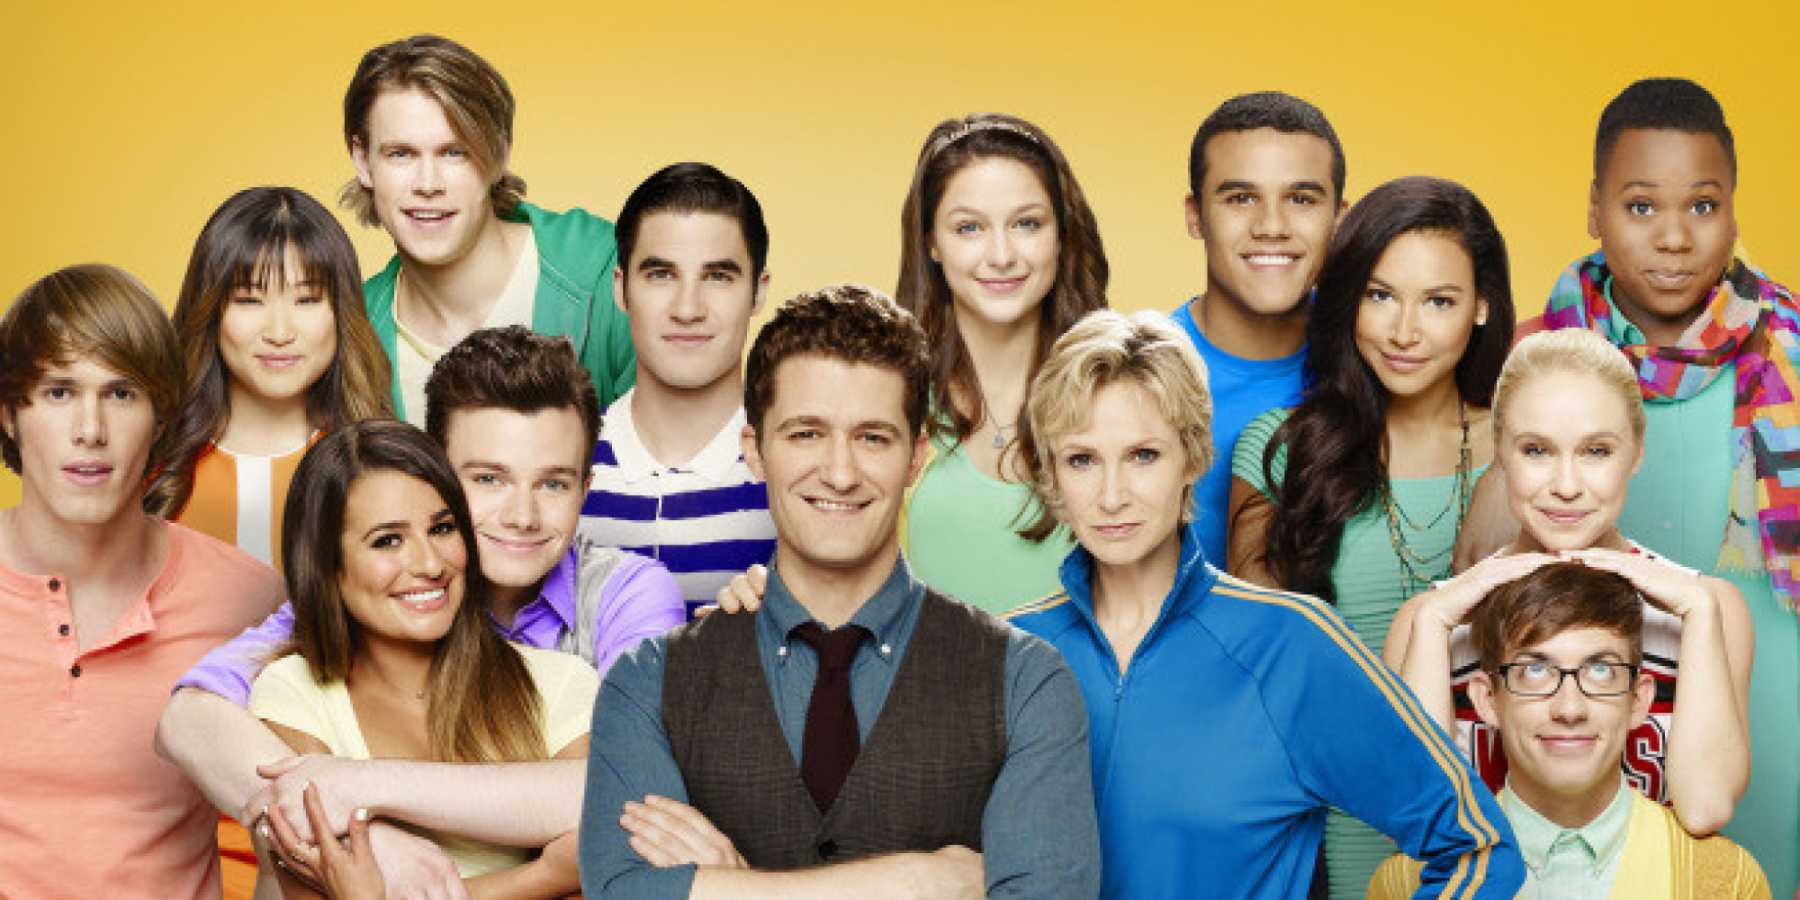 Glee's 100th Episode Is Almost Here! What Can We Look Forward To In Episode 101?